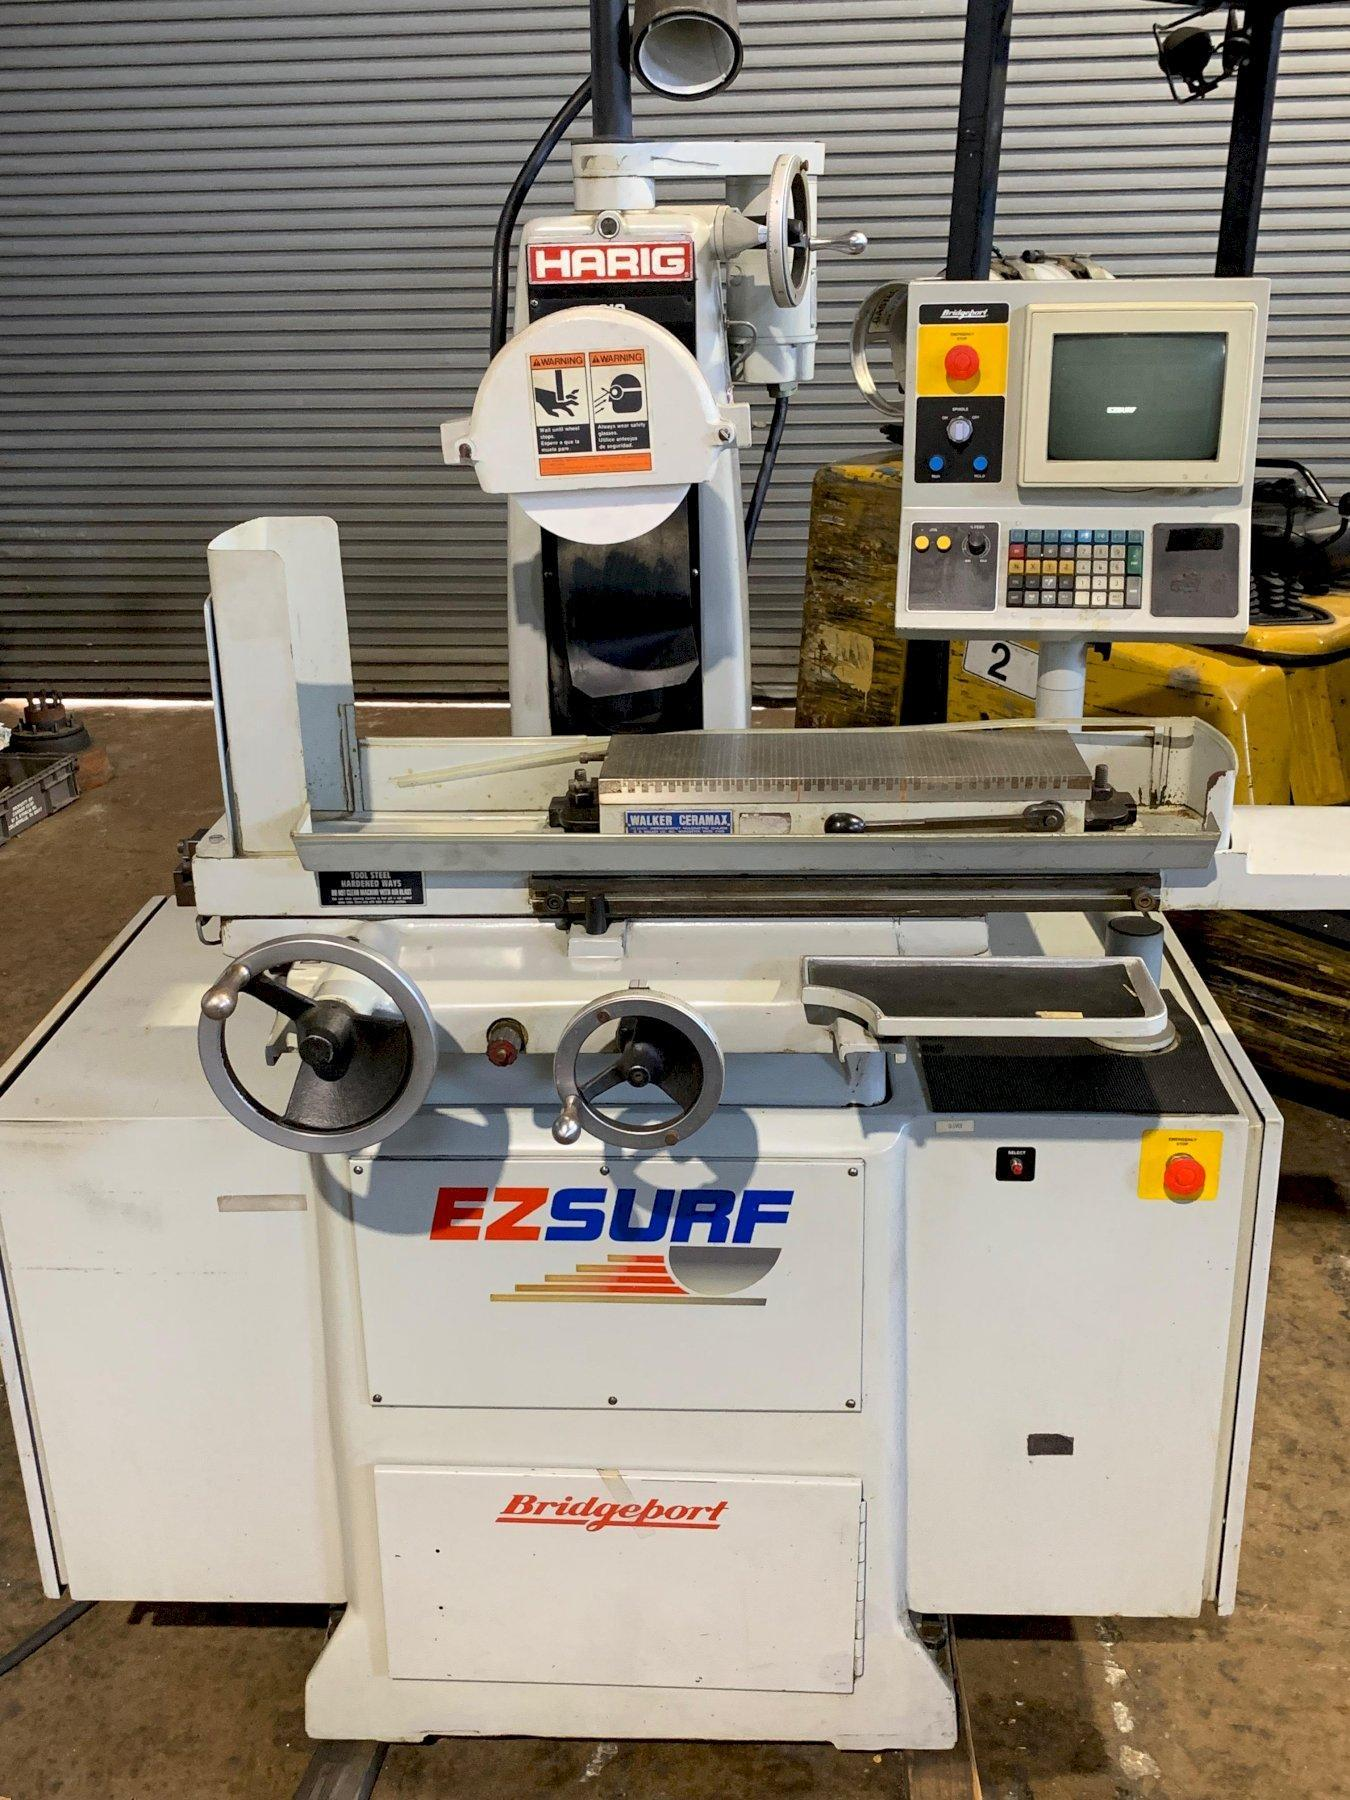 Bridgeport Harig EZ-SURF 618 Surface Grinder